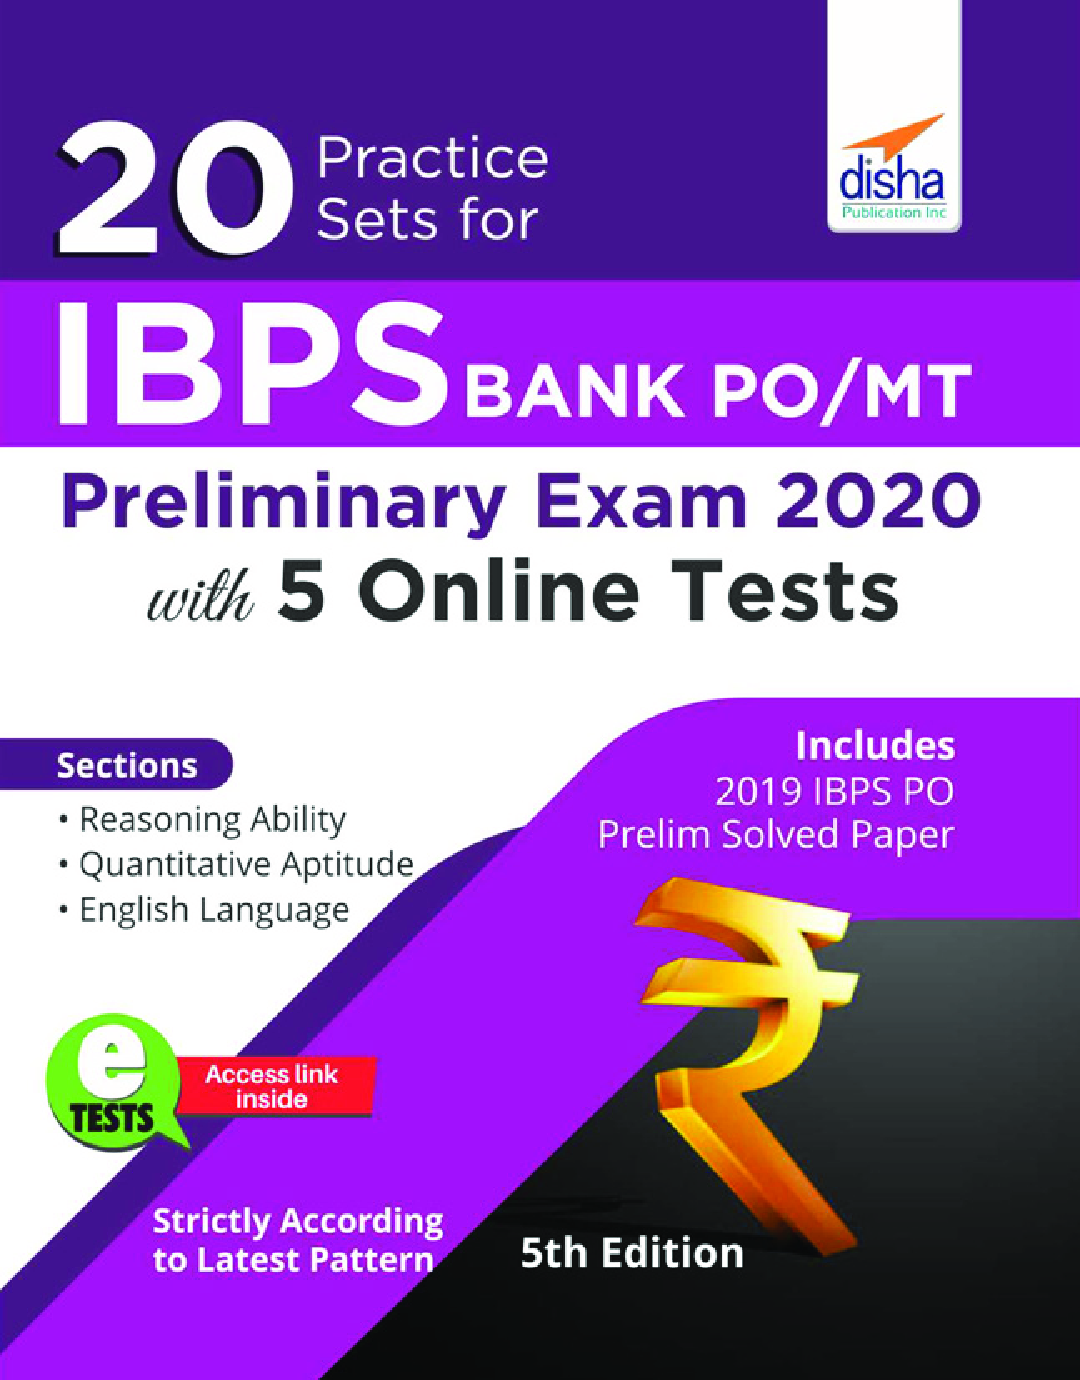 20 Practice Sets For IBPS PO/ MT Preliminary Exam 2020 With 5 Online Tests 5th Edition - Page 1